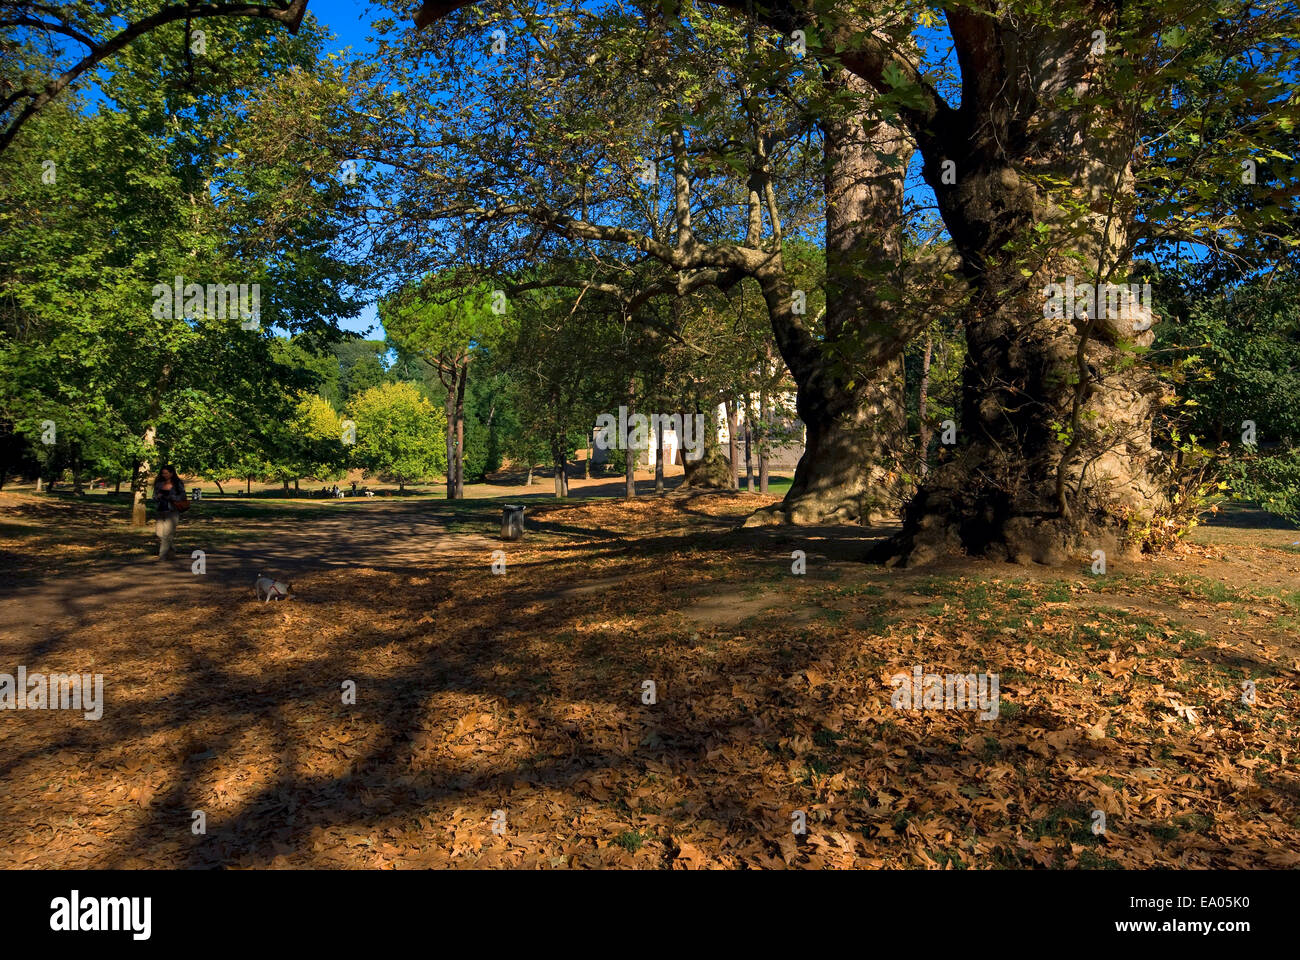 Trees in Villa Borghese Park, Rome, Italy - Stock Image